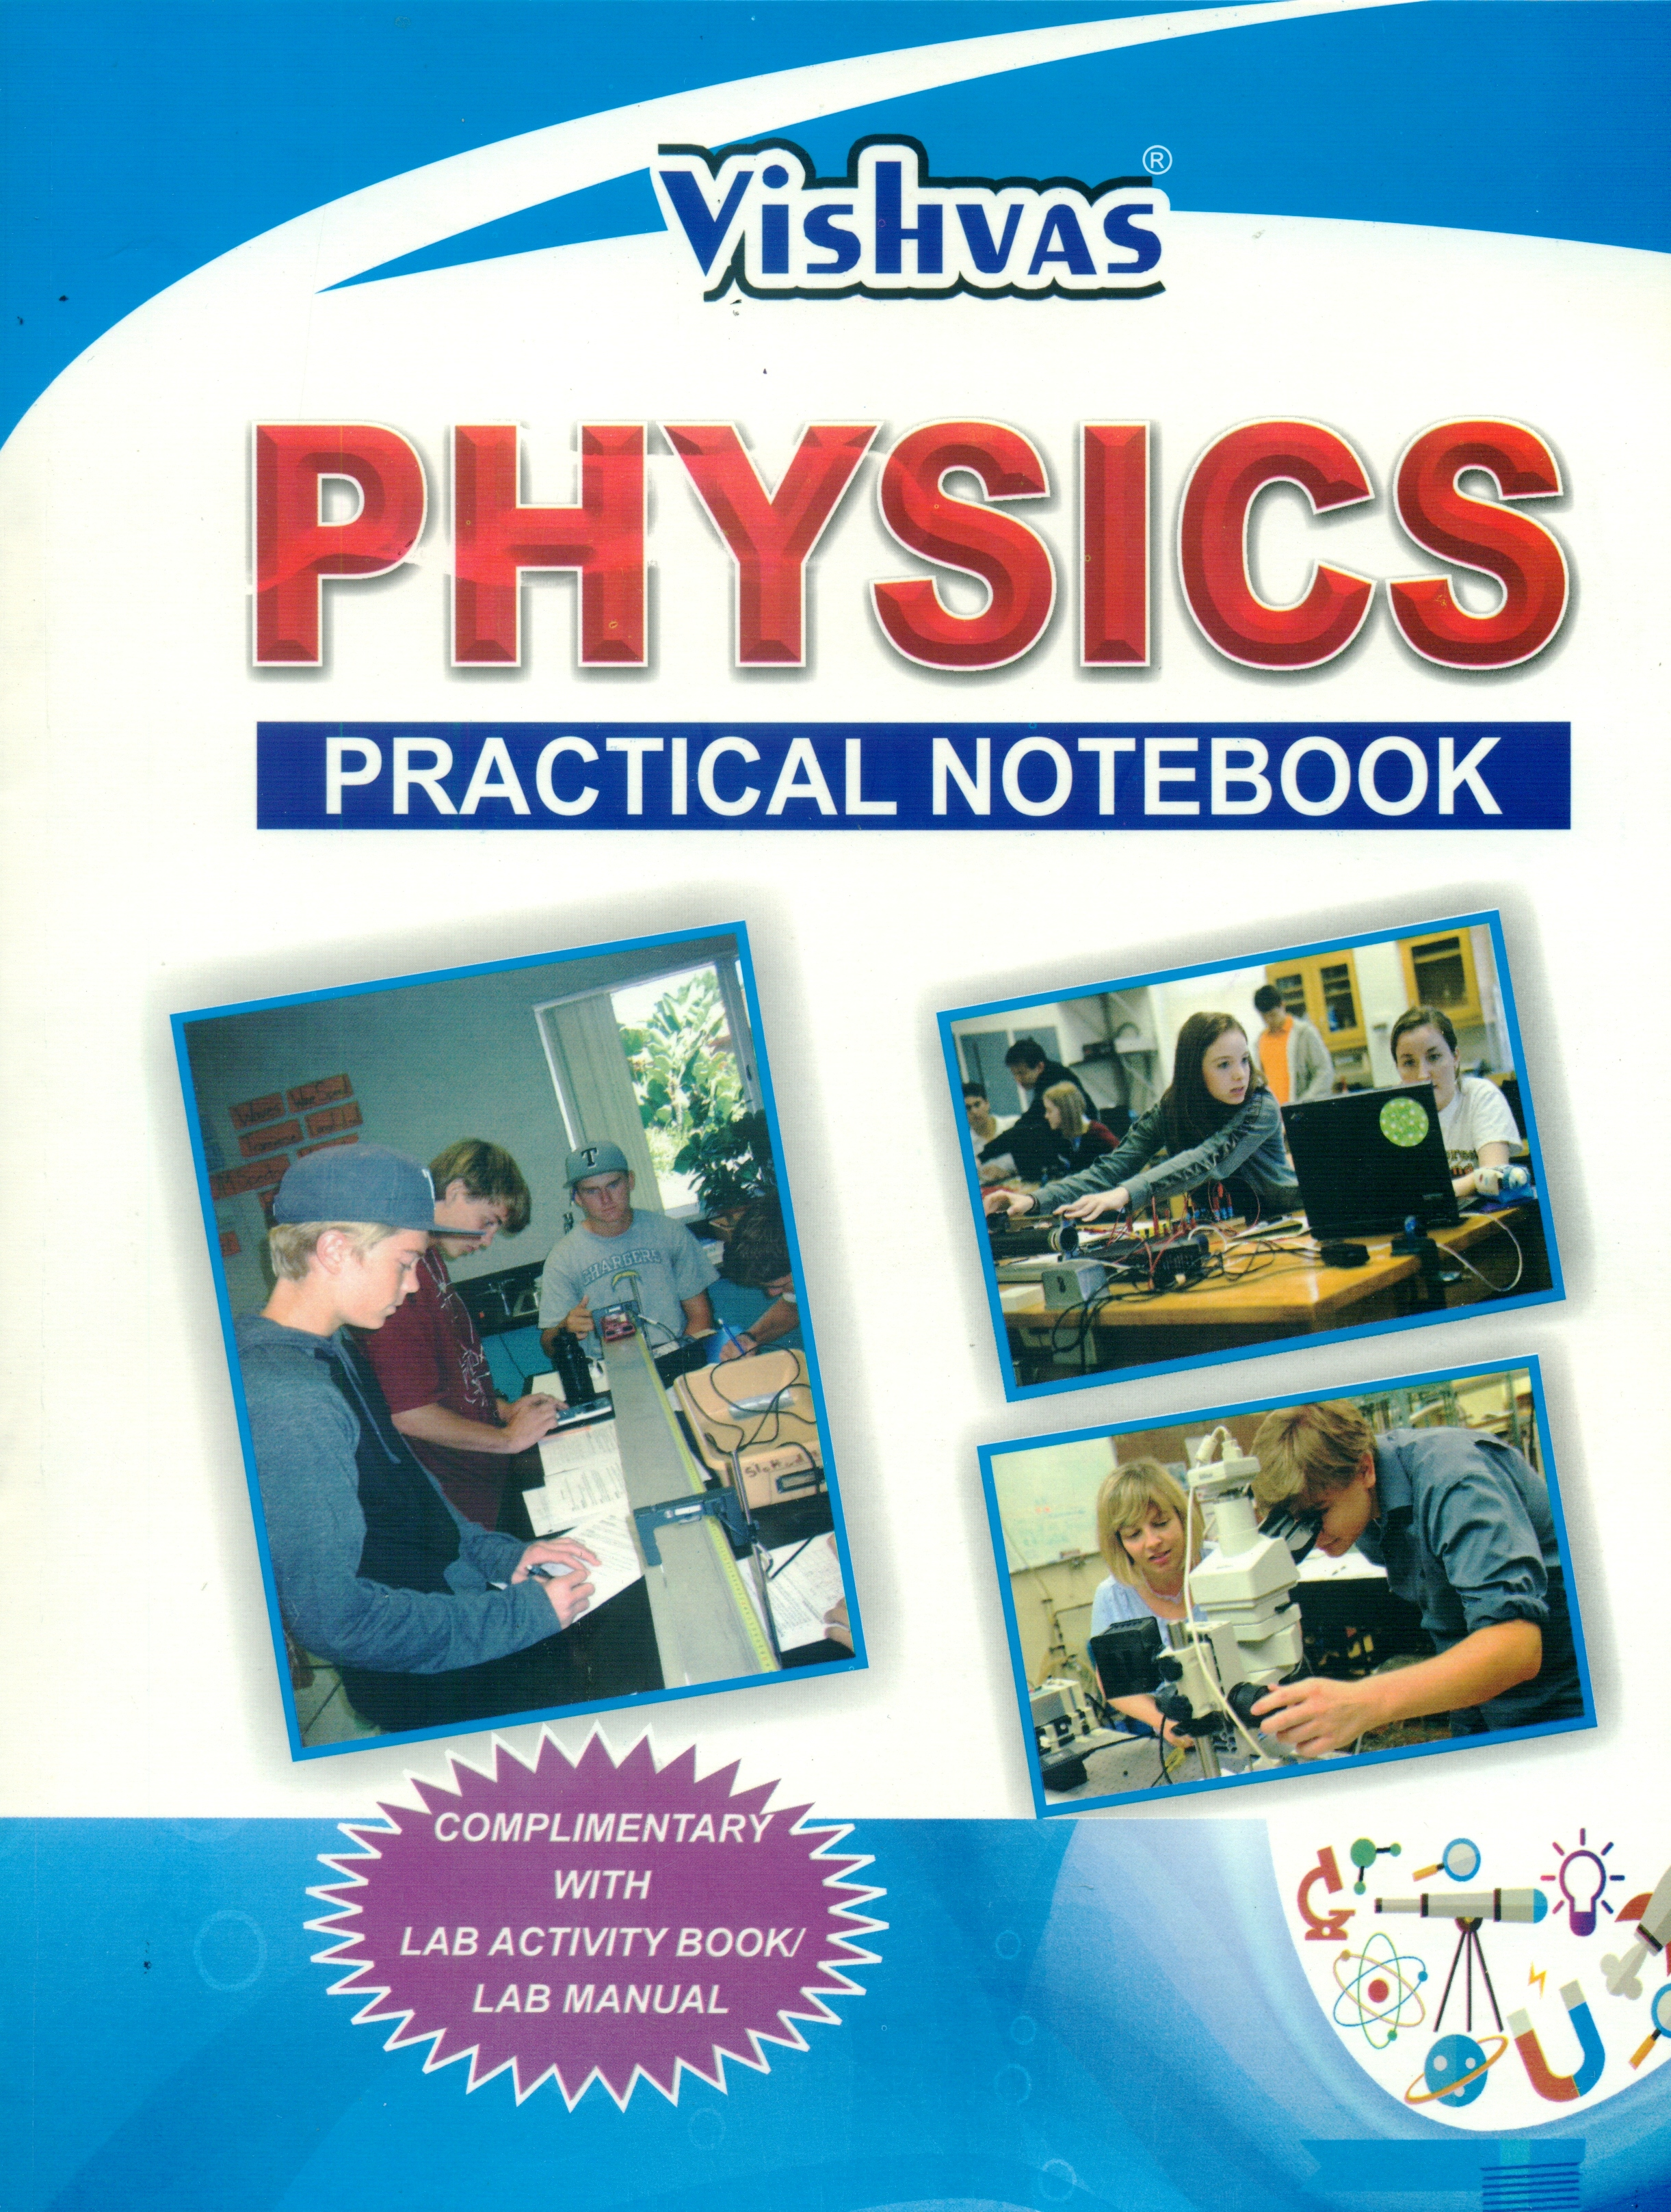 CBSE-2019-PHYSICS LAB ACTIVITY BOOK ,Class-XI,(With Practical Related  Information) (PAPERBACK)-With Free practical Notebook Set of 3 books,  Revised